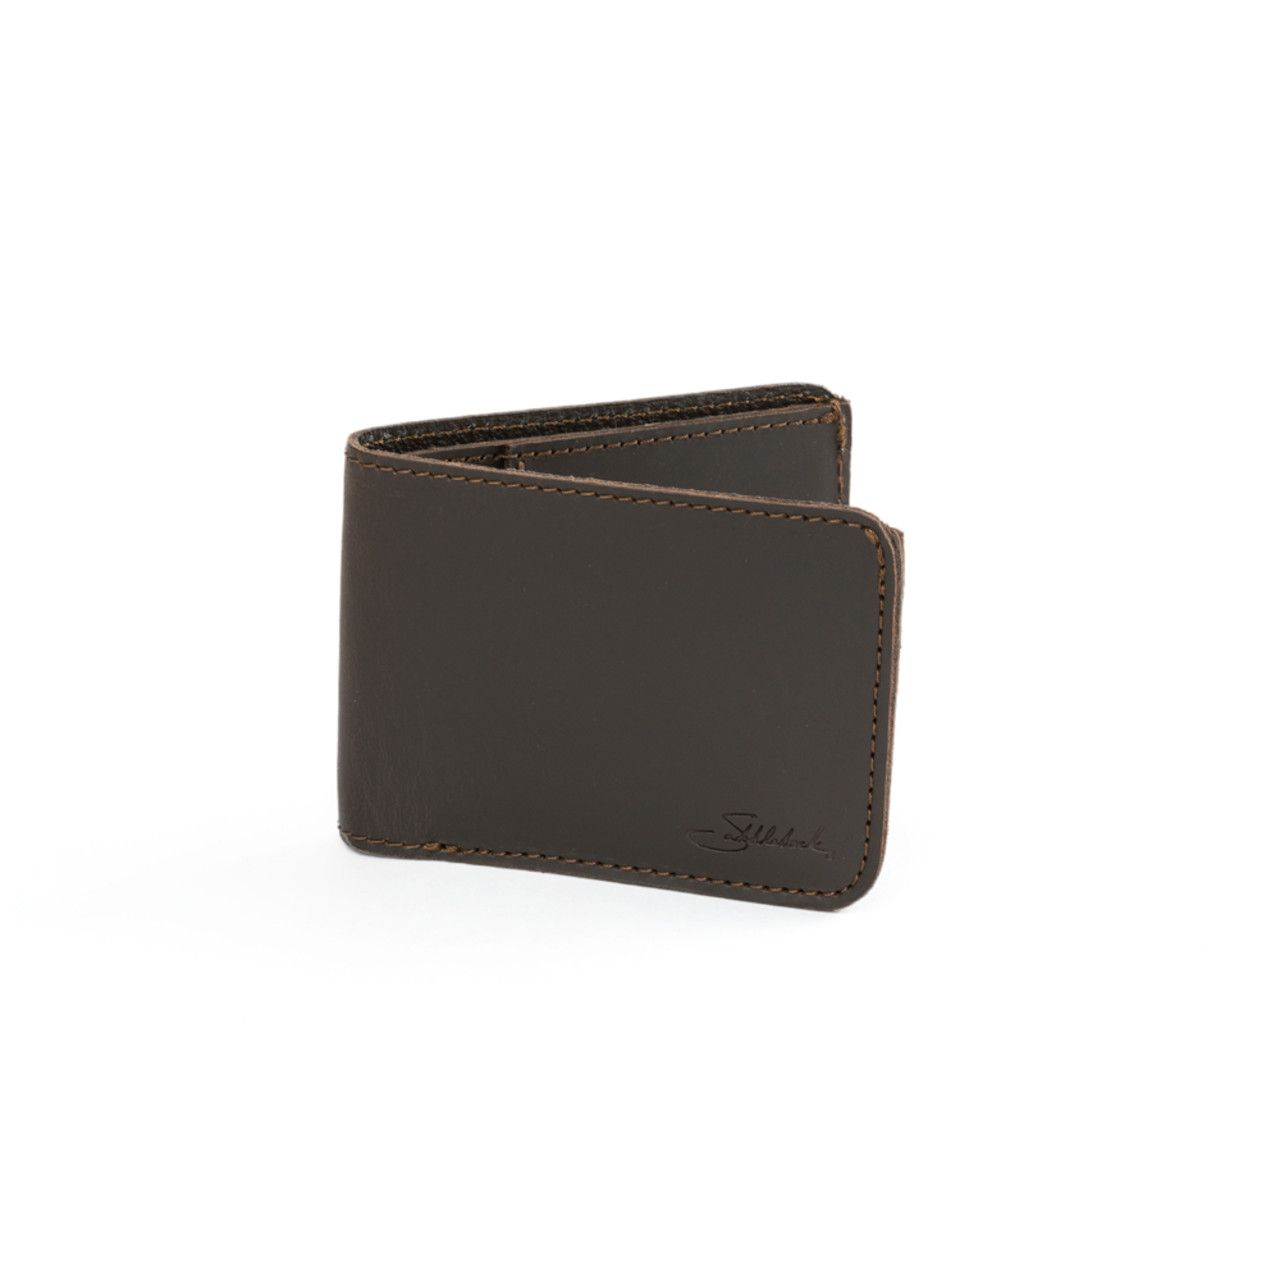 small leather bifold wallet small in dark coffee brown leather